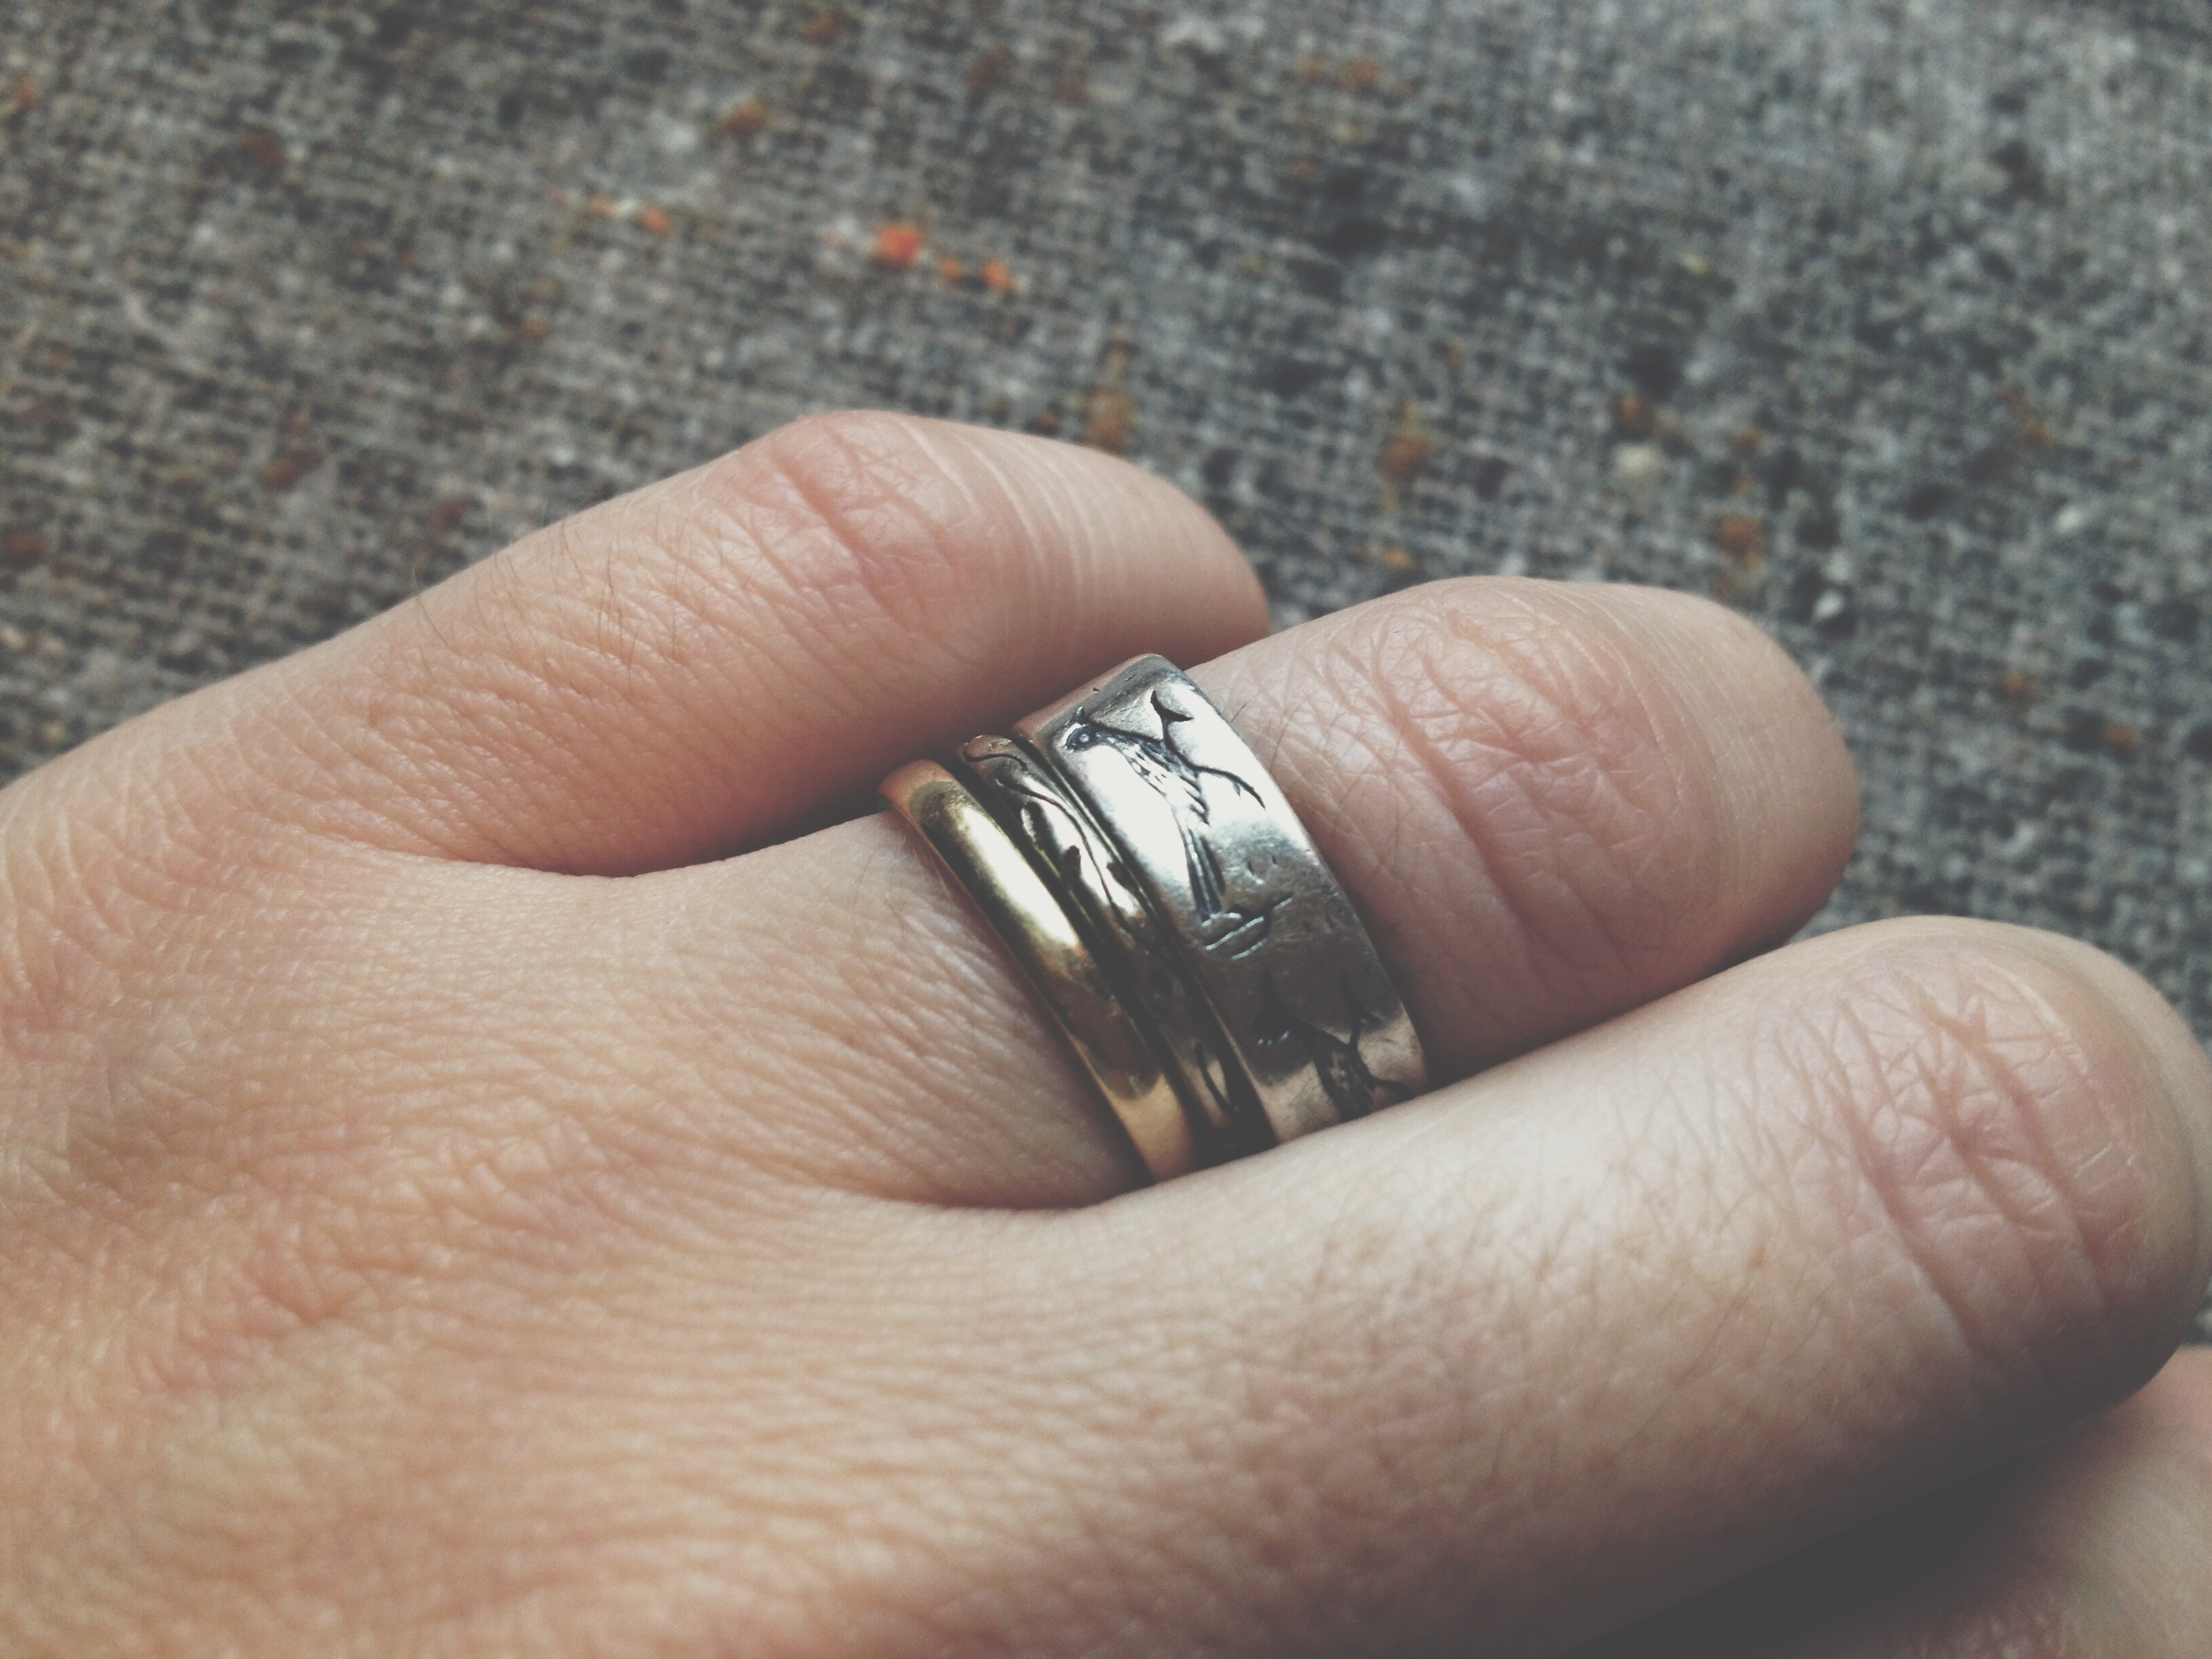 the roadrunner ring i found in my mom's old jewelry box is now a part of my wedding stack...